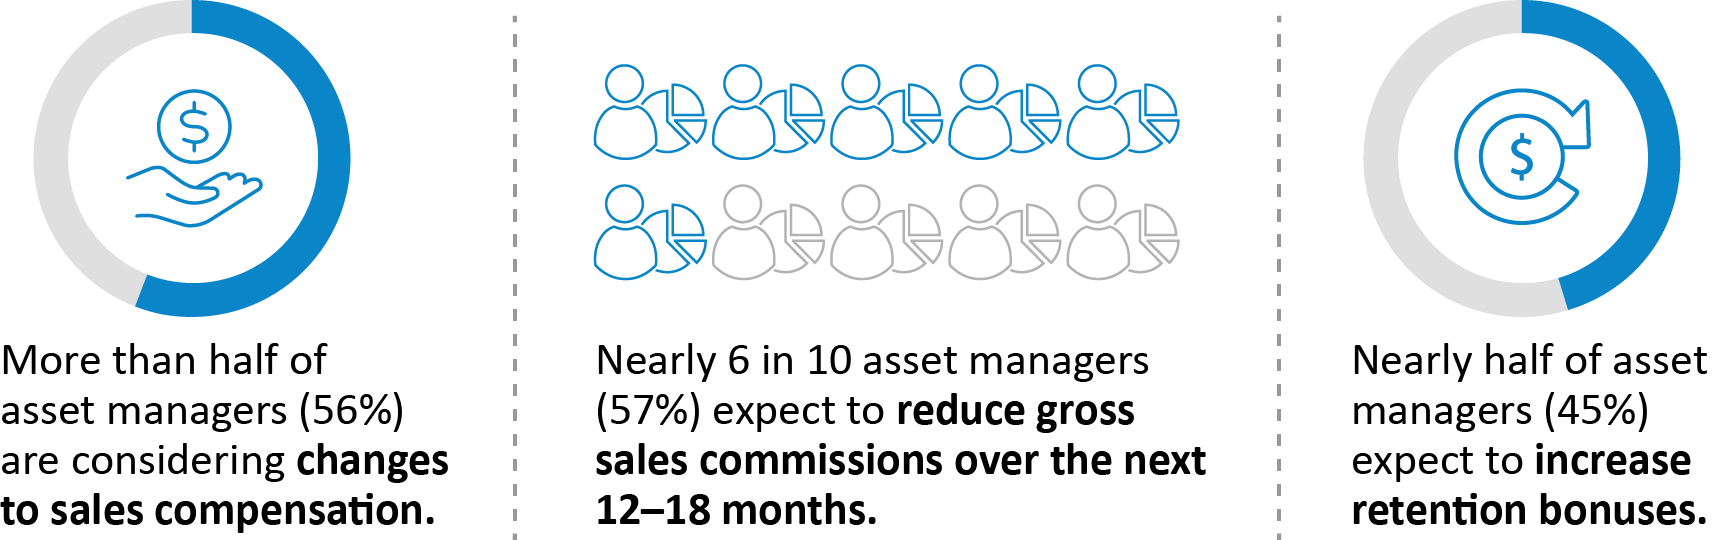 Infographic shows the changes asset managers anticipate in the future